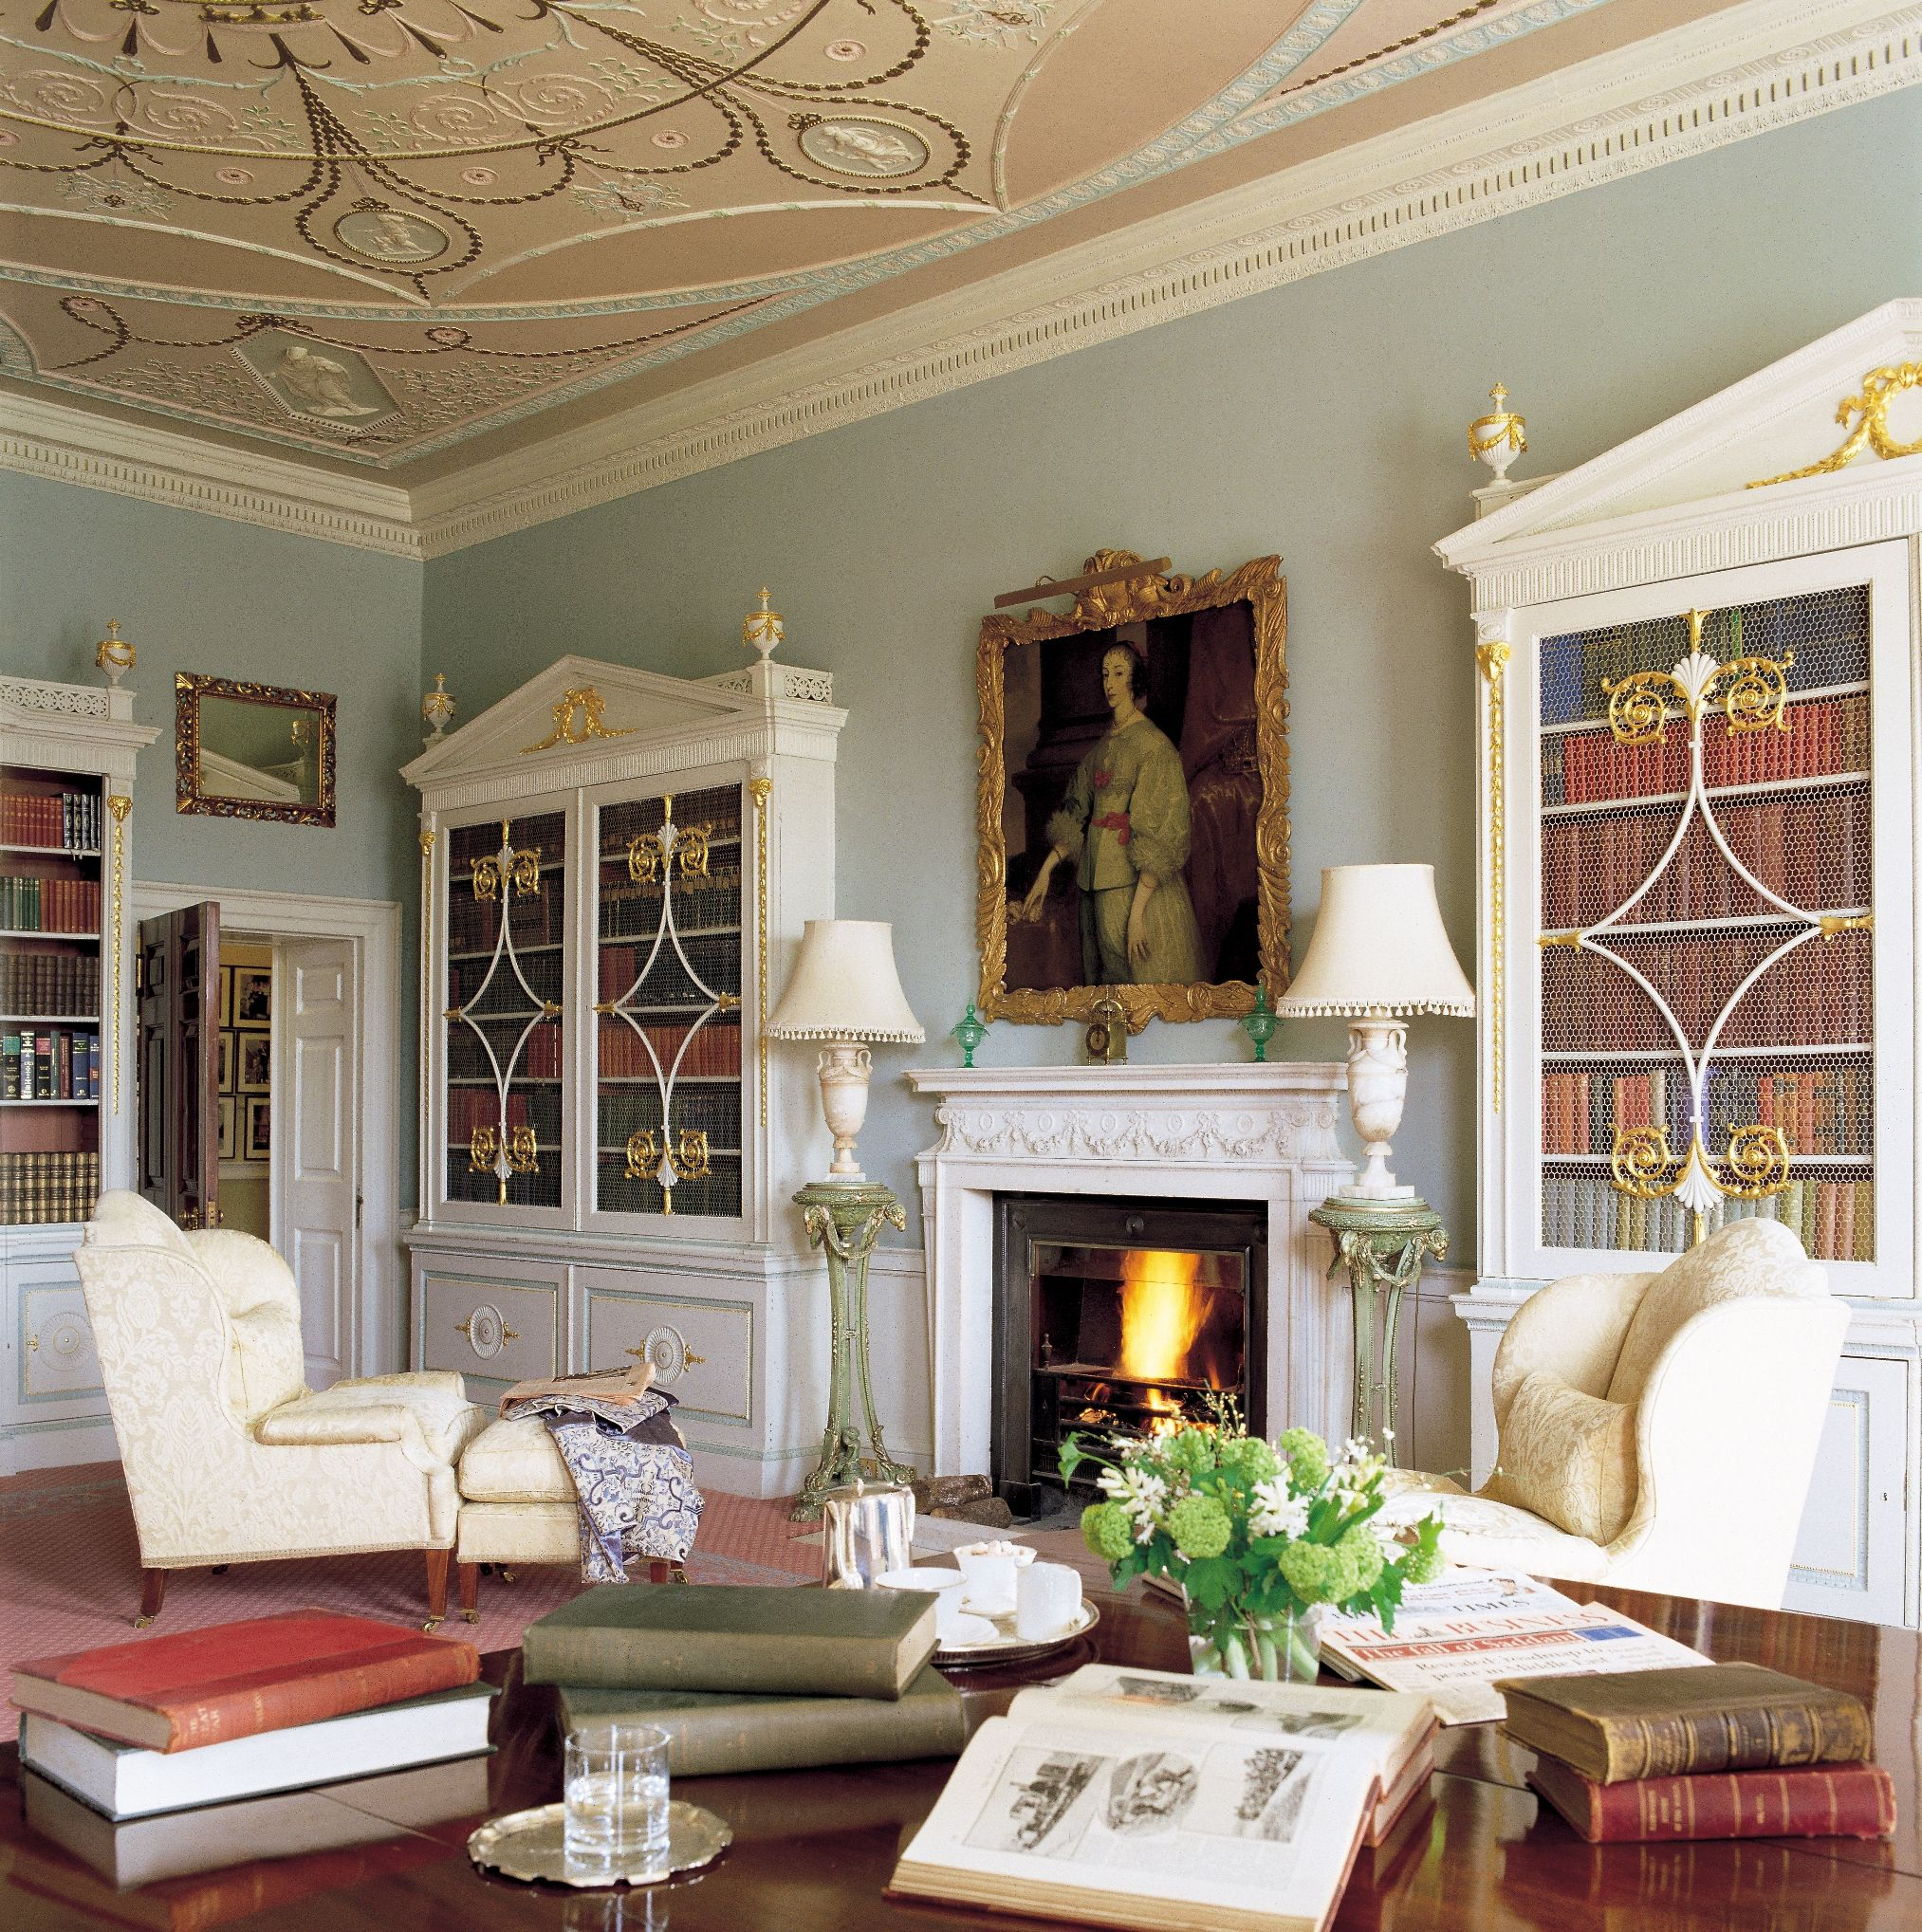 30 Classic Home Library Design Ideas Imposing Style: Library In Brocket Hall, Brocket Hall Estate